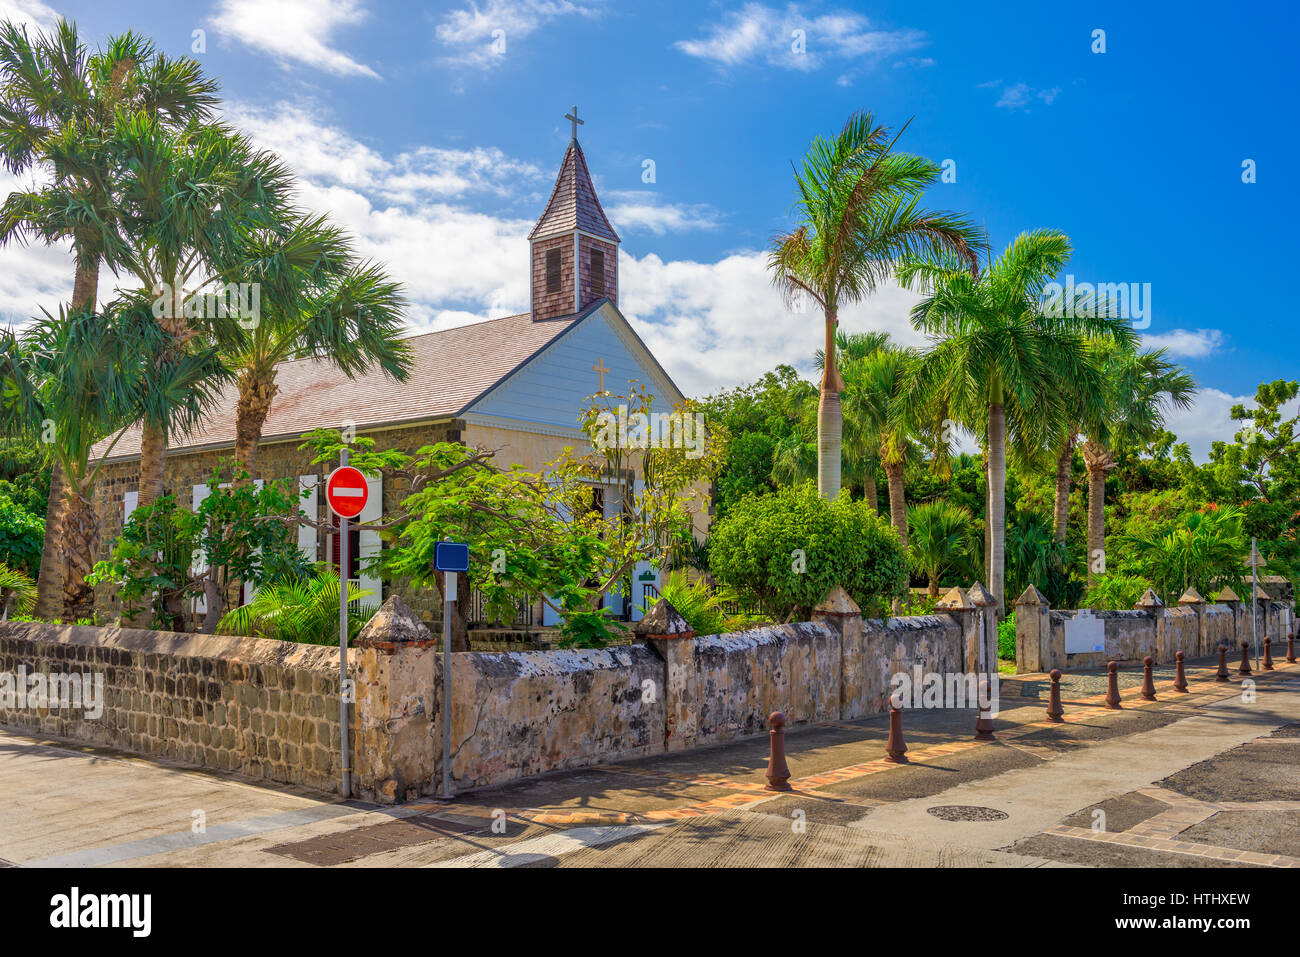 Saint Barthelemy Anglican Church. - Stock Image